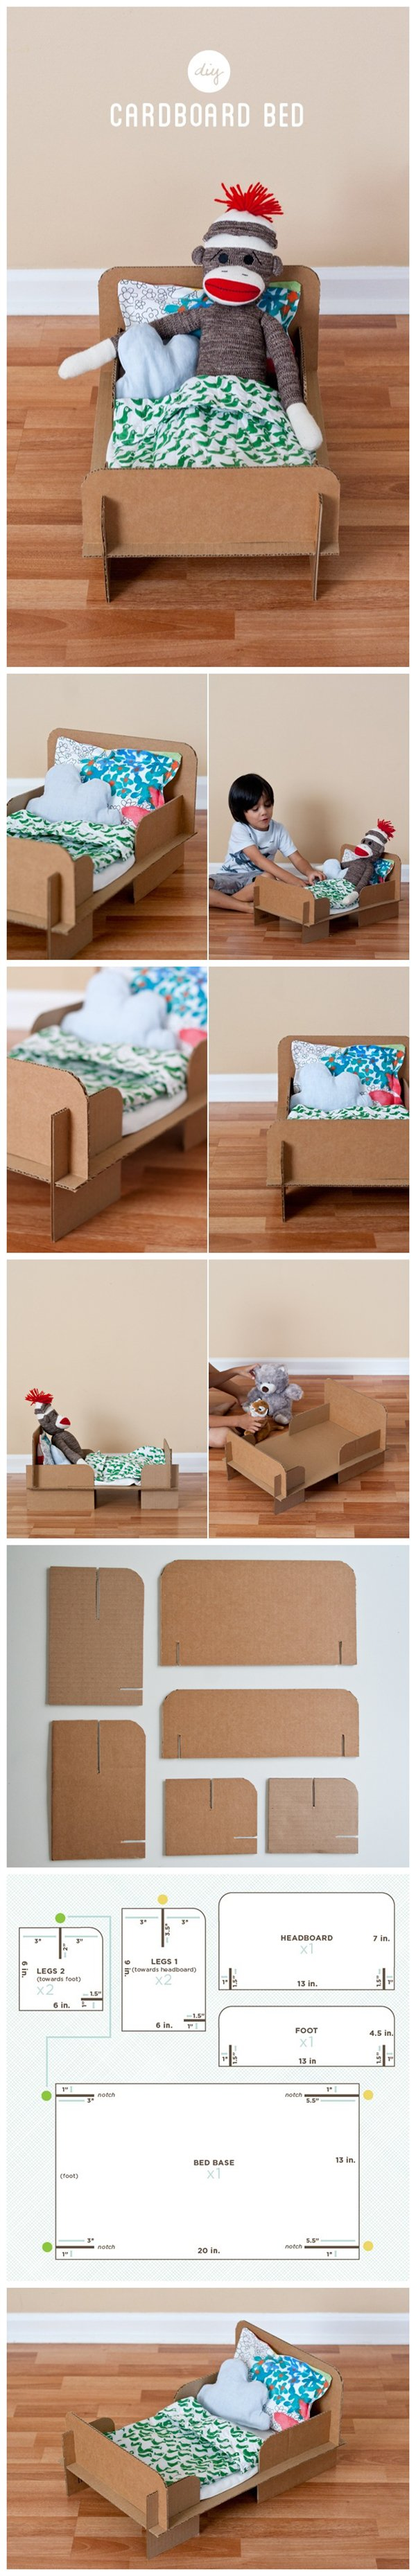 Diy Cardboard Bed Tutorials